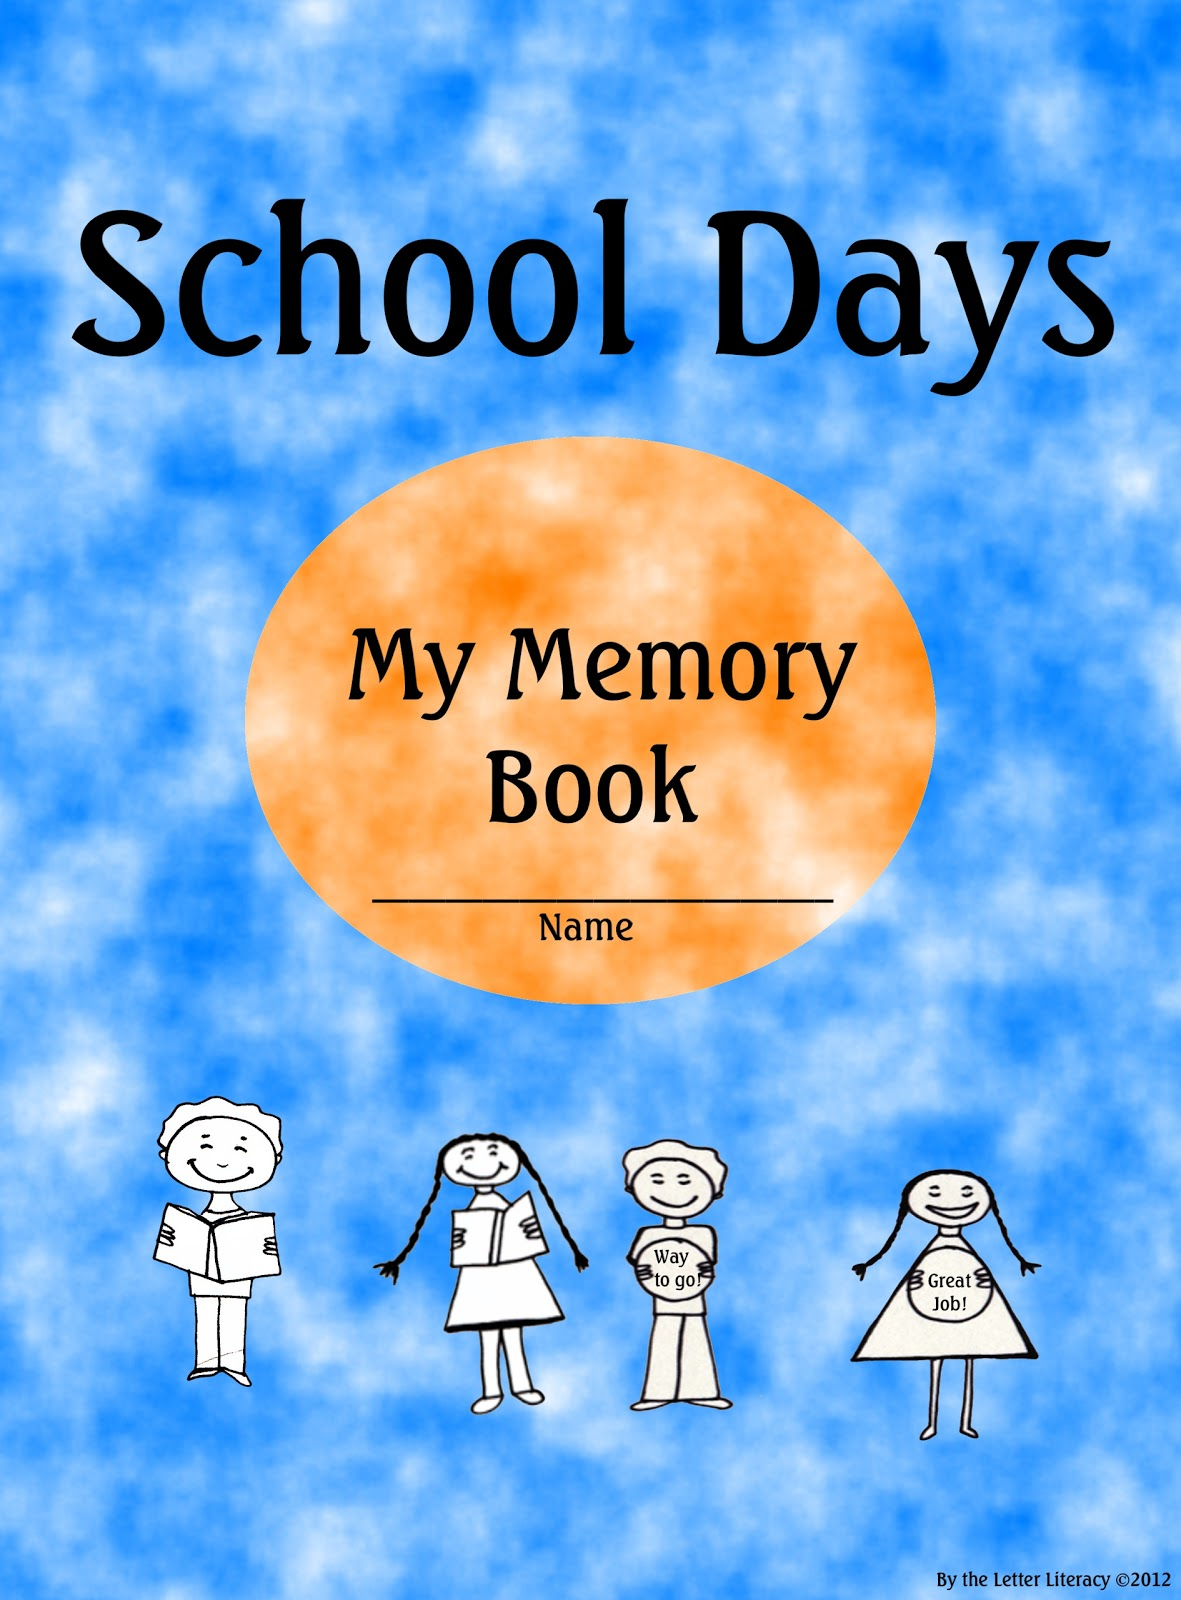 Memory Book Cover Printable : By the letter literacy free download school days memory